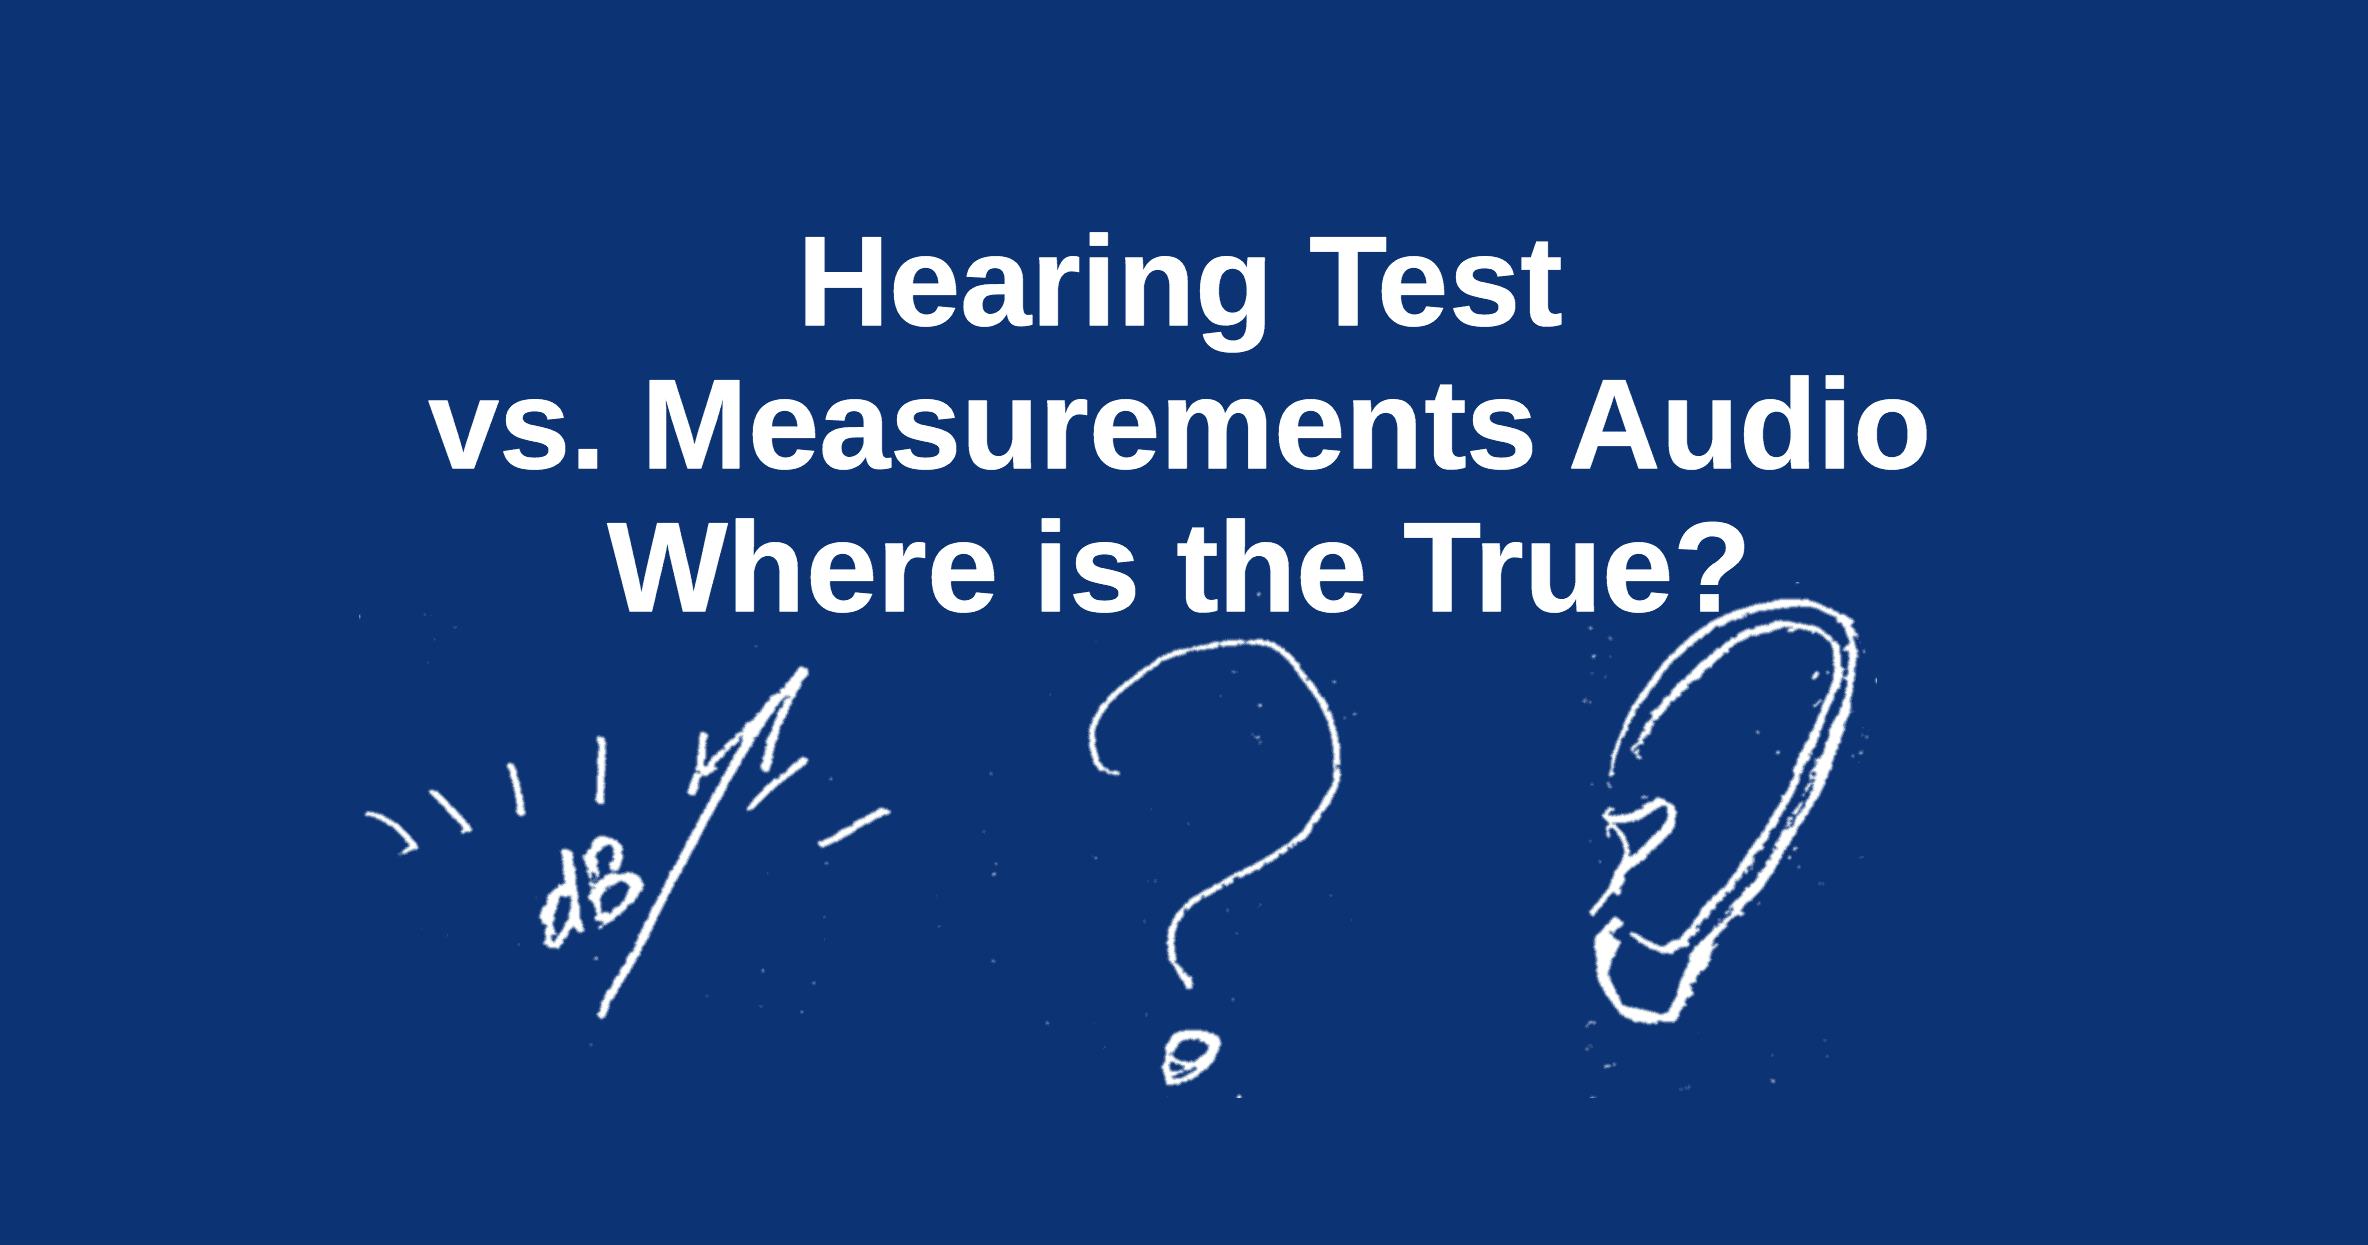 Hearing Test vs. Measurements Audio. Where is the True?